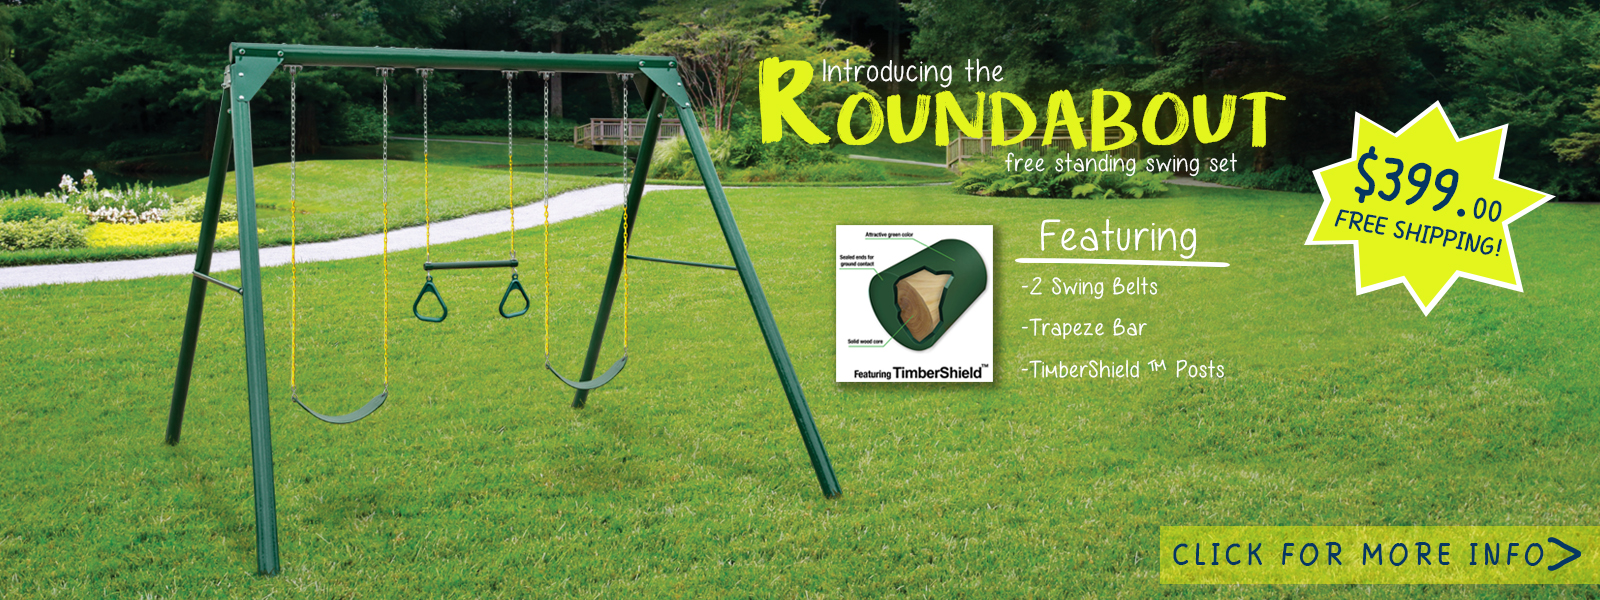 Click here to check out our Roundabout Swing Set!